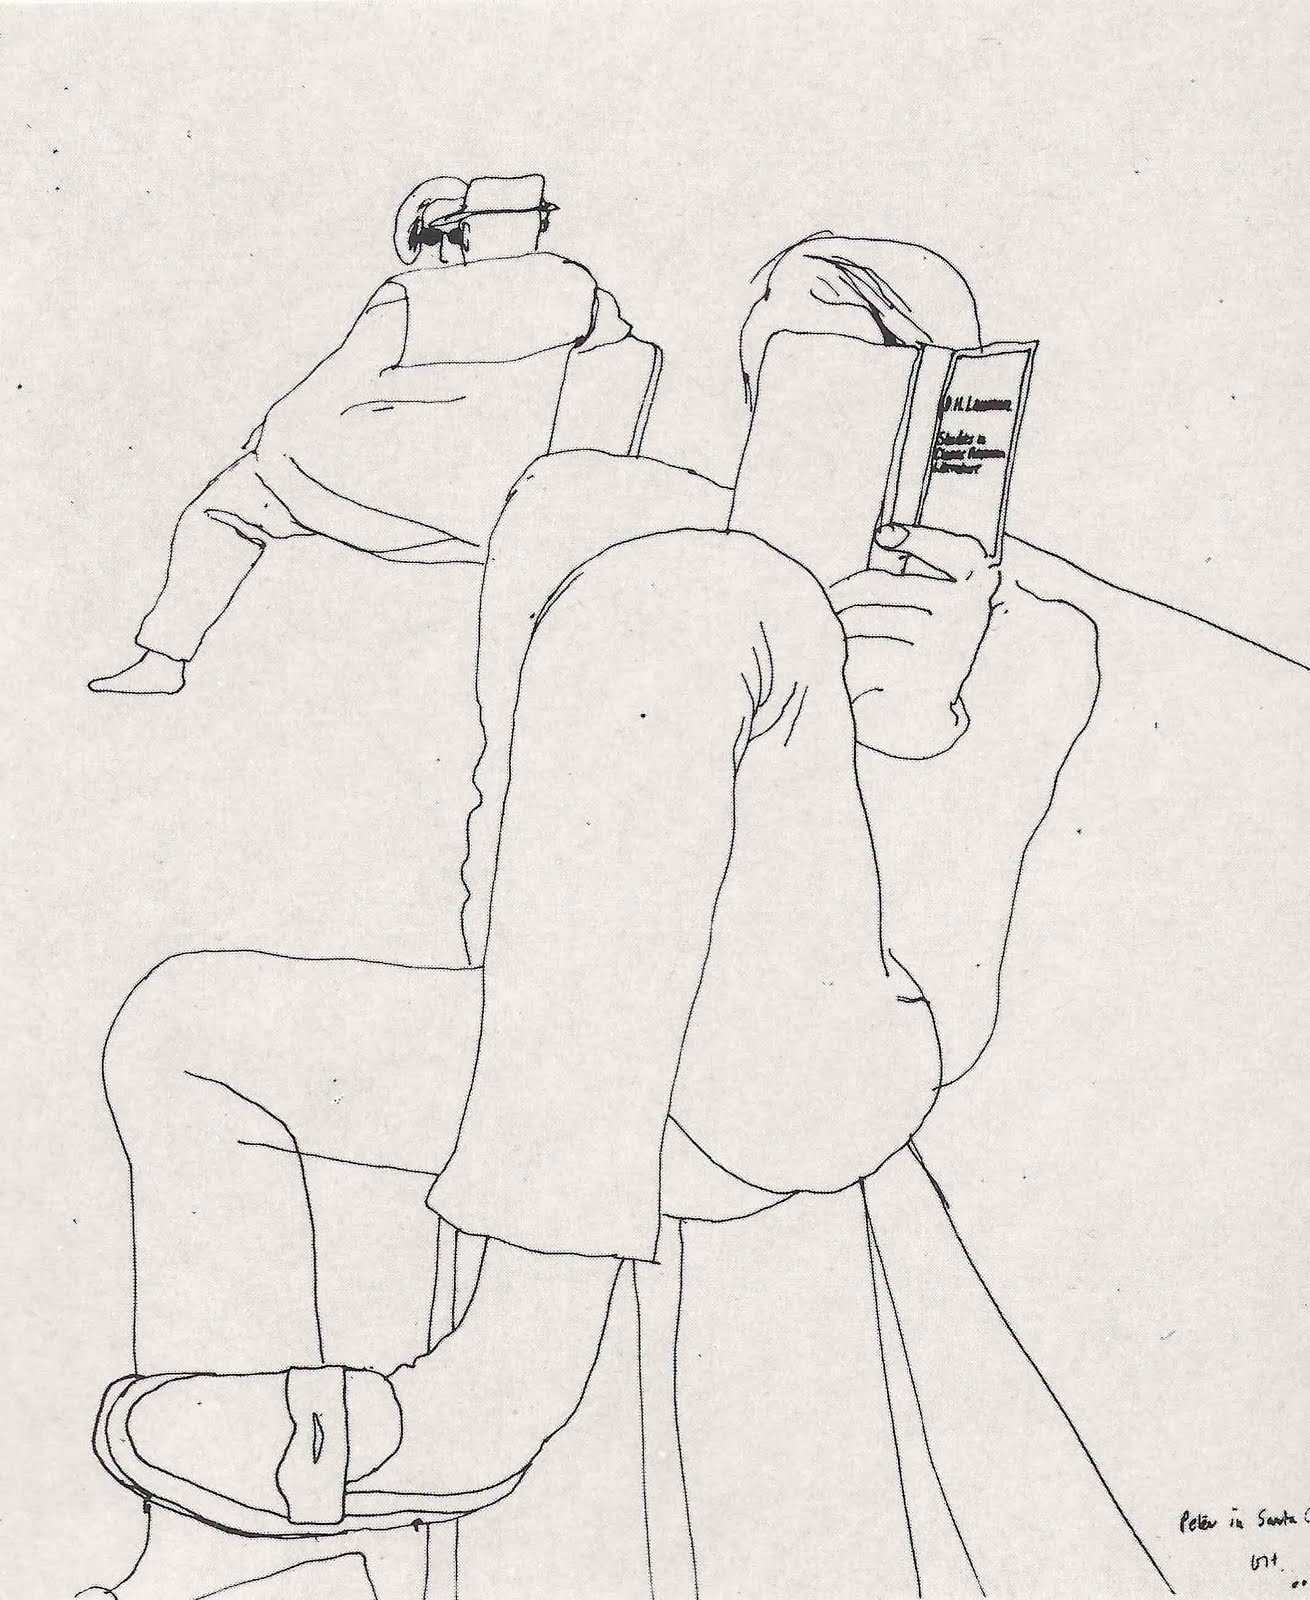 David Hockney Ink Drawings David Hockney Was Born in 1937